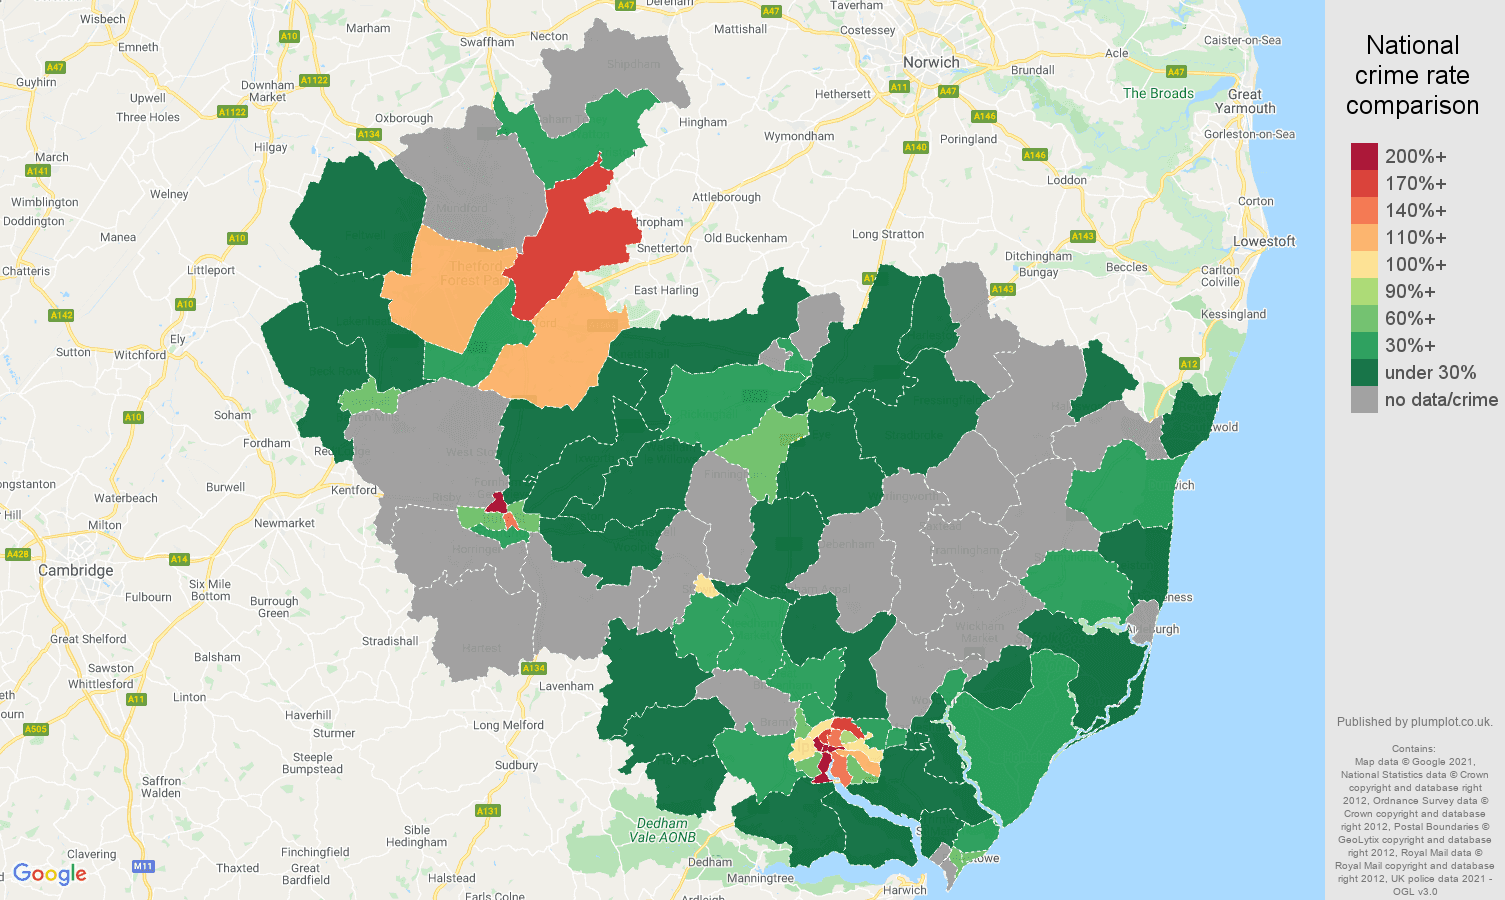 Ipswich bicycle theft crime rate comparison map